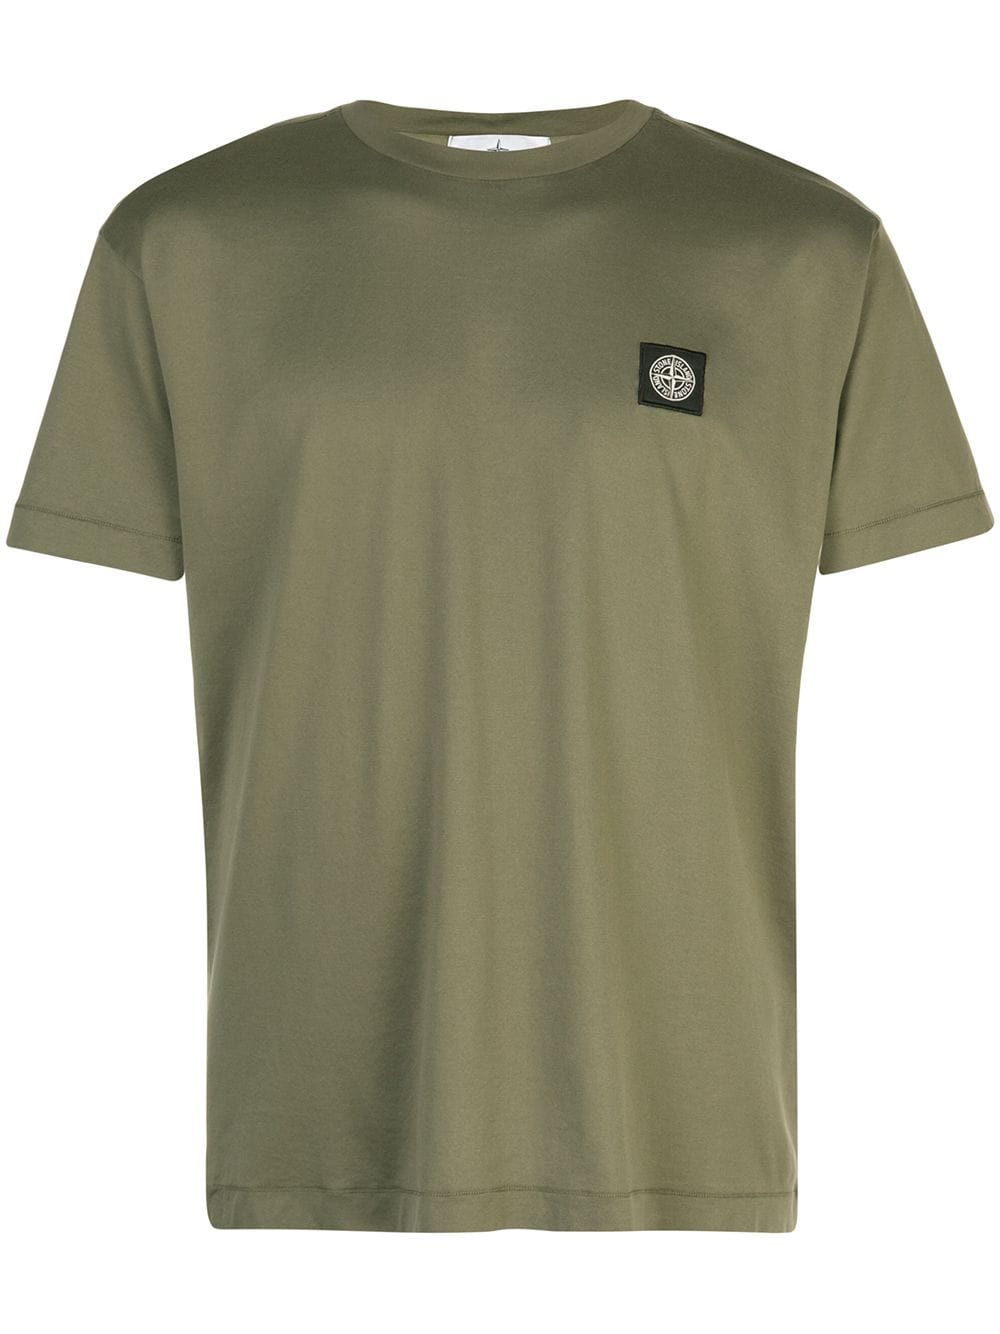 Stone Island Embroidered Logo T Shirt Green In 2019 Stone Island T Shirt Stone Island Mens Tops